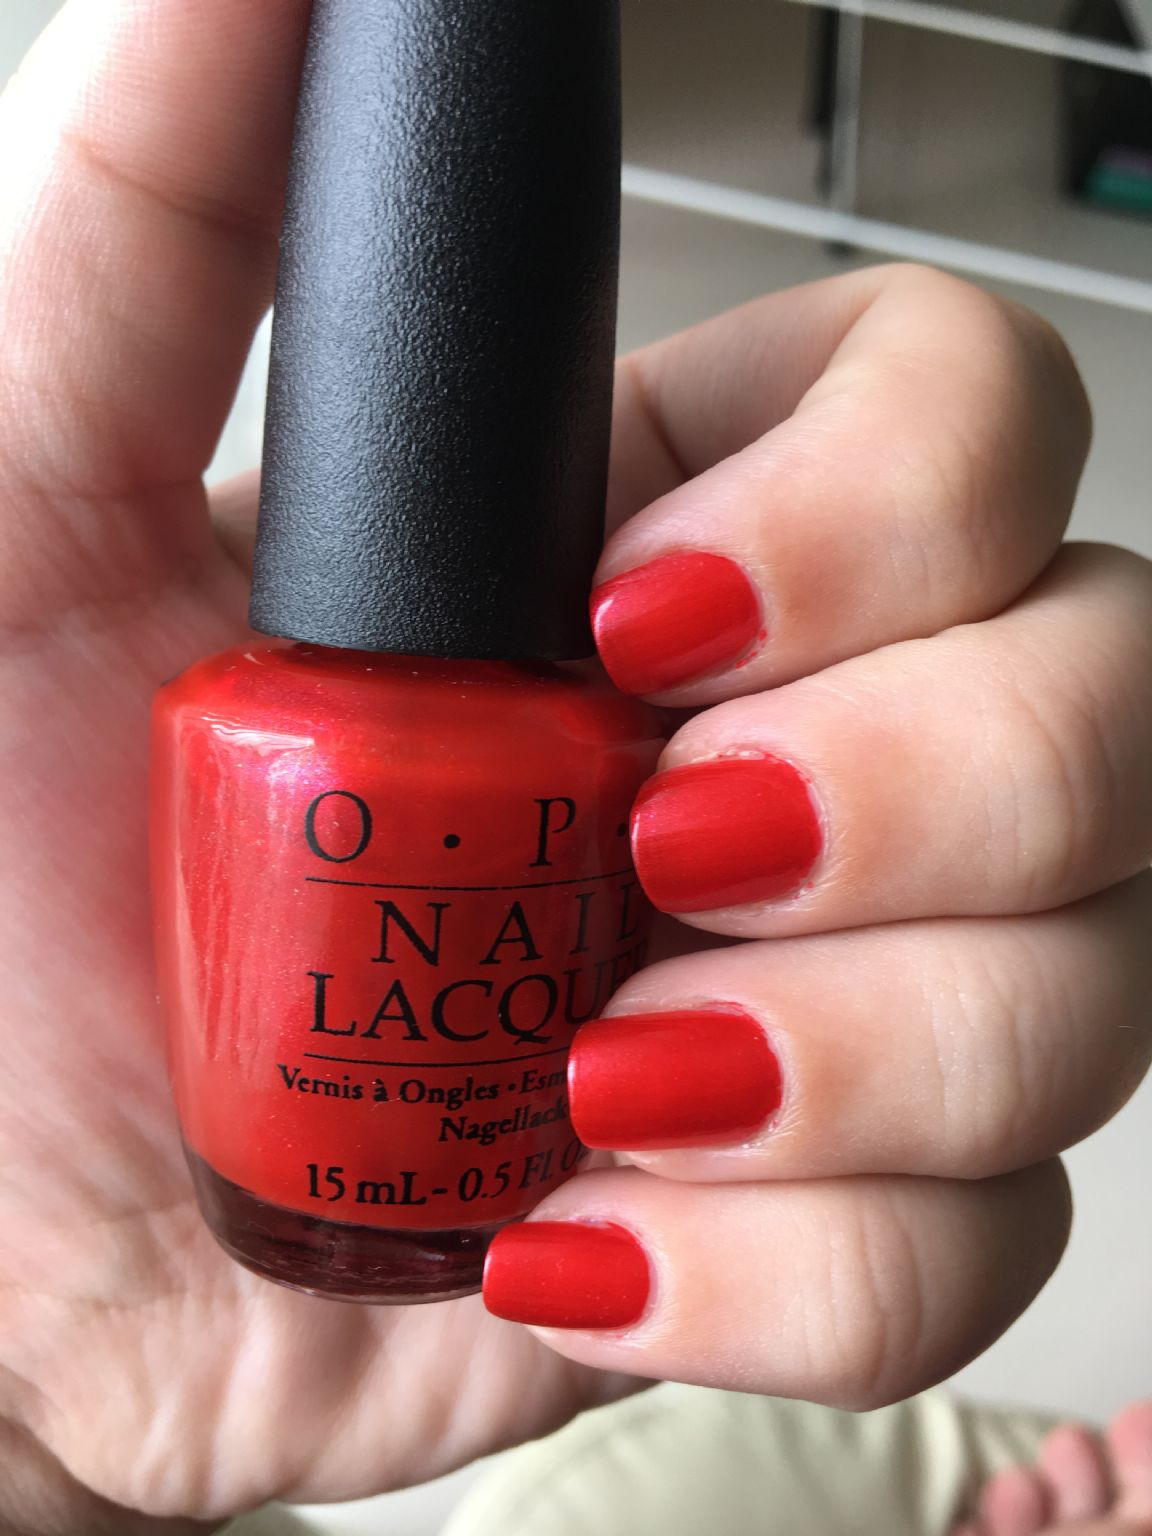 Opi Gimme A Lido Kiss : gimme, Gimme, Reviews,, Photos,, Ingredients, MakeupAlley